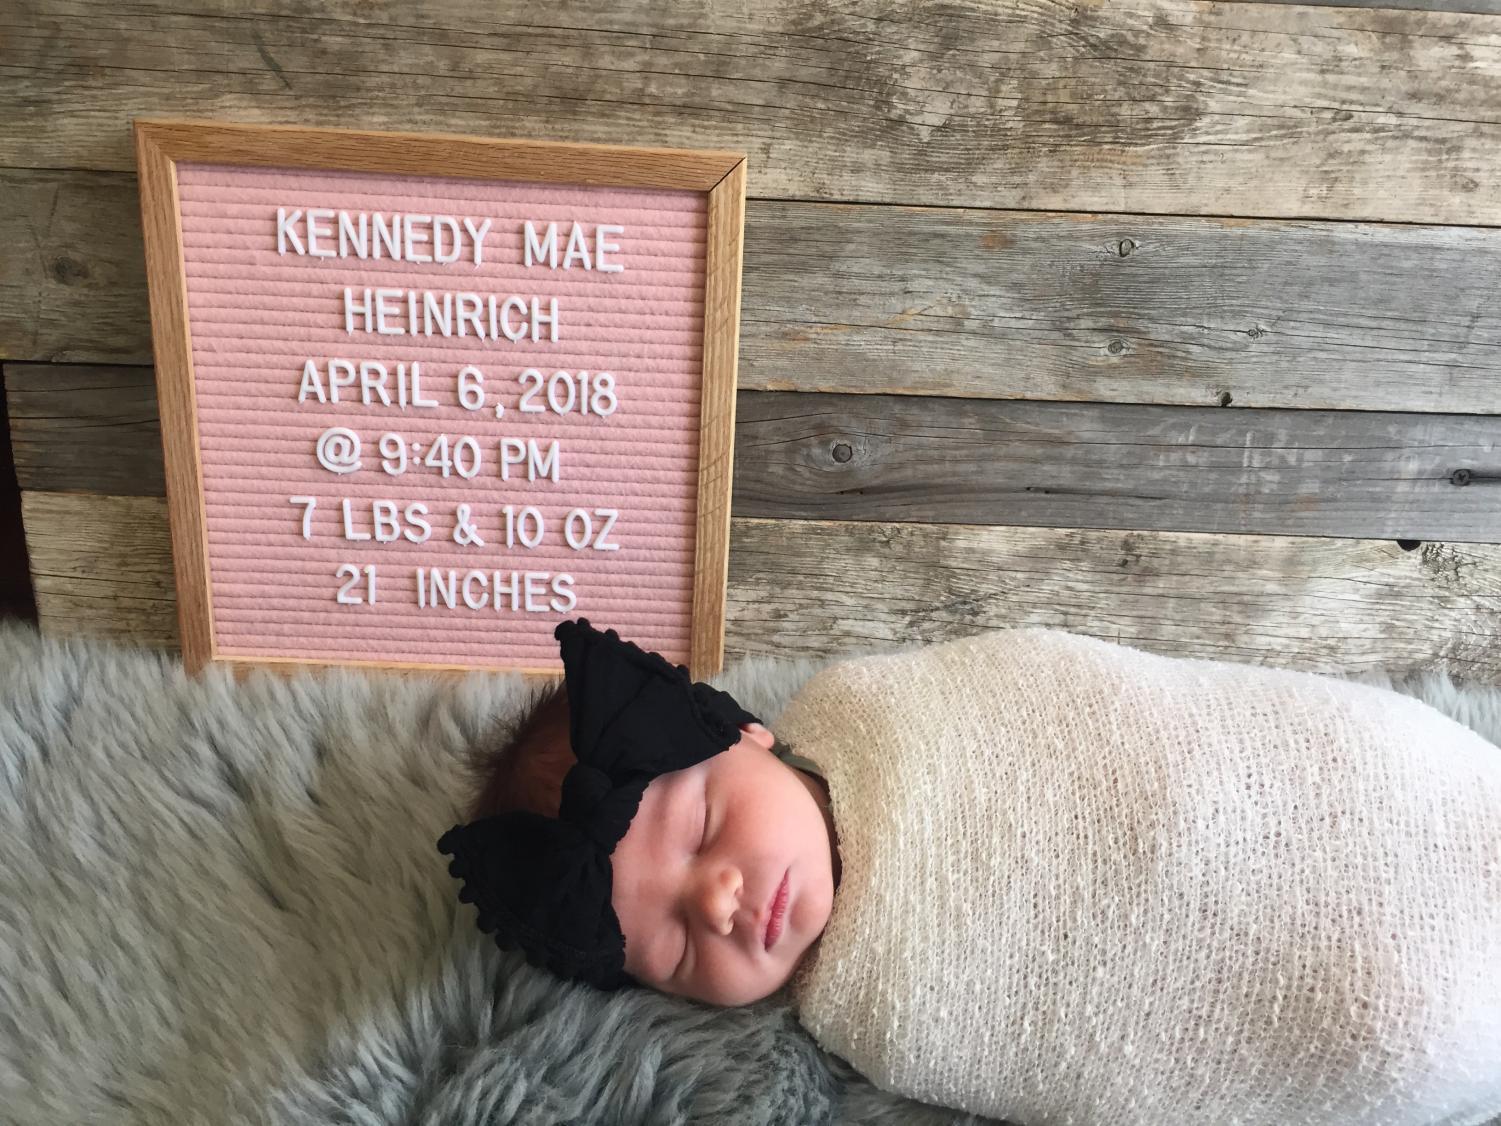 Mrs. Heinrich's daughter, Kennedy Mae Henrich